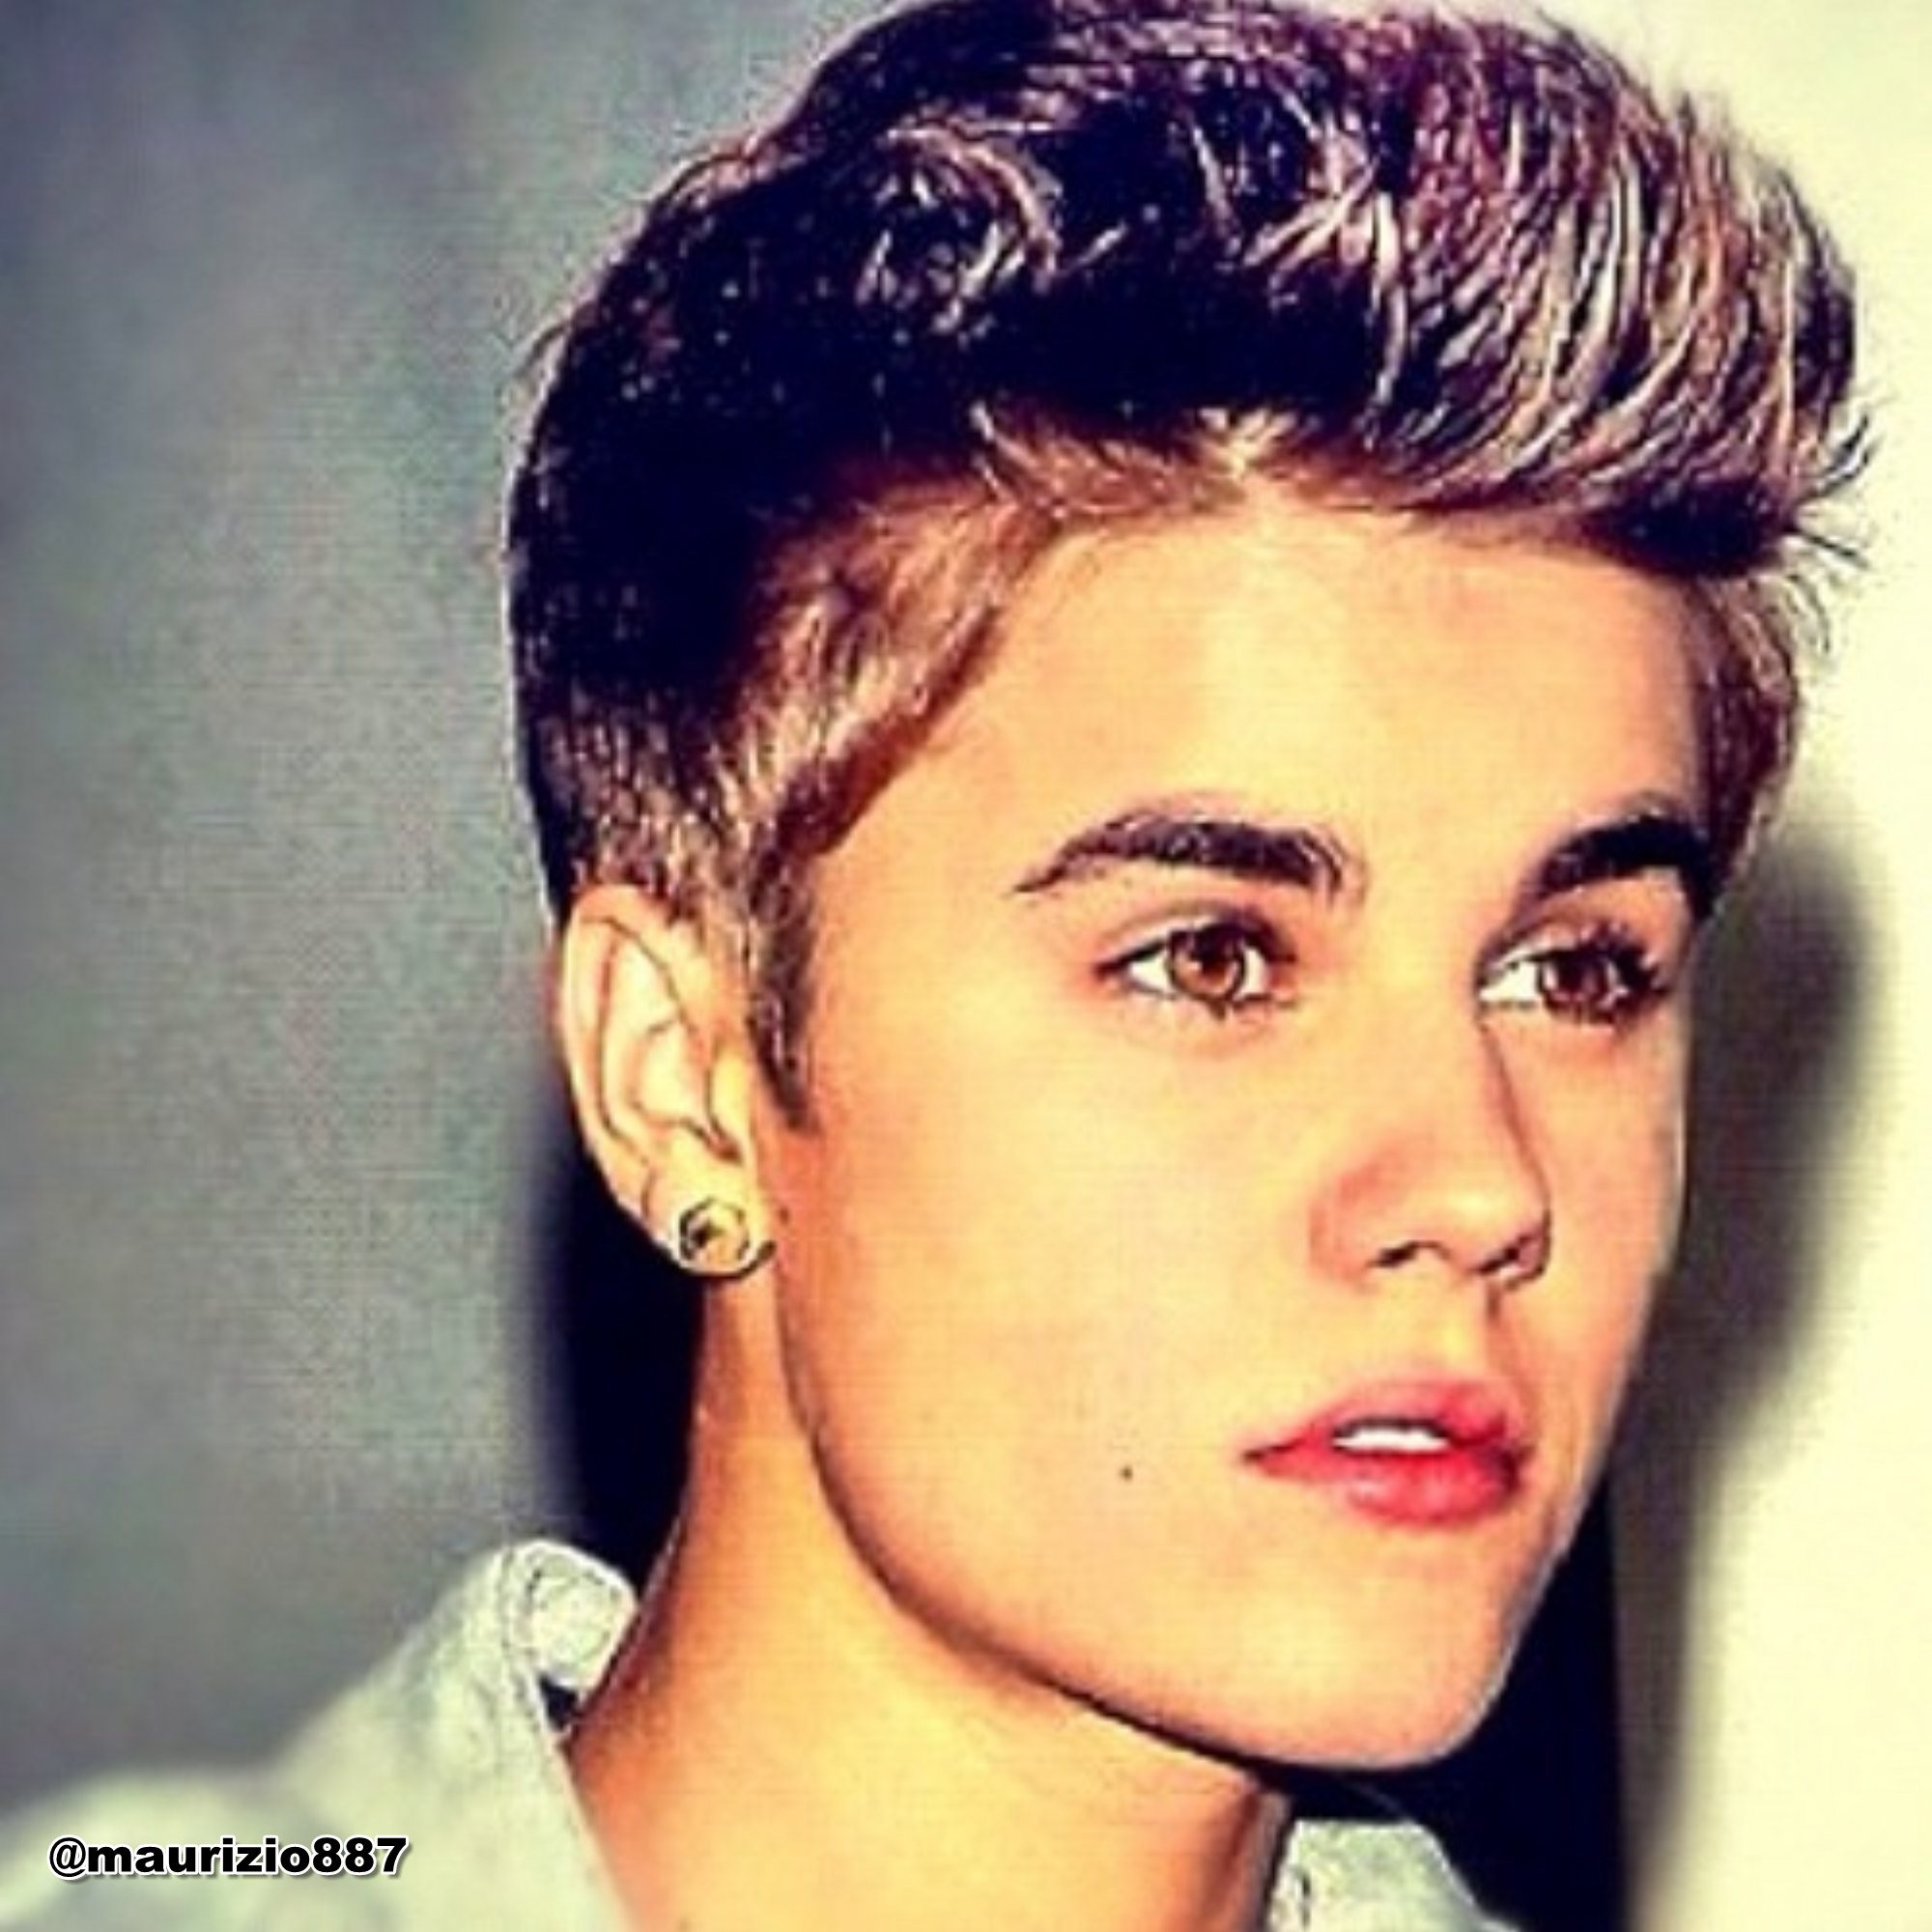 justin bieber, 2012 - Justin Bieber Photo (32132140) - Fanpop fanclubs